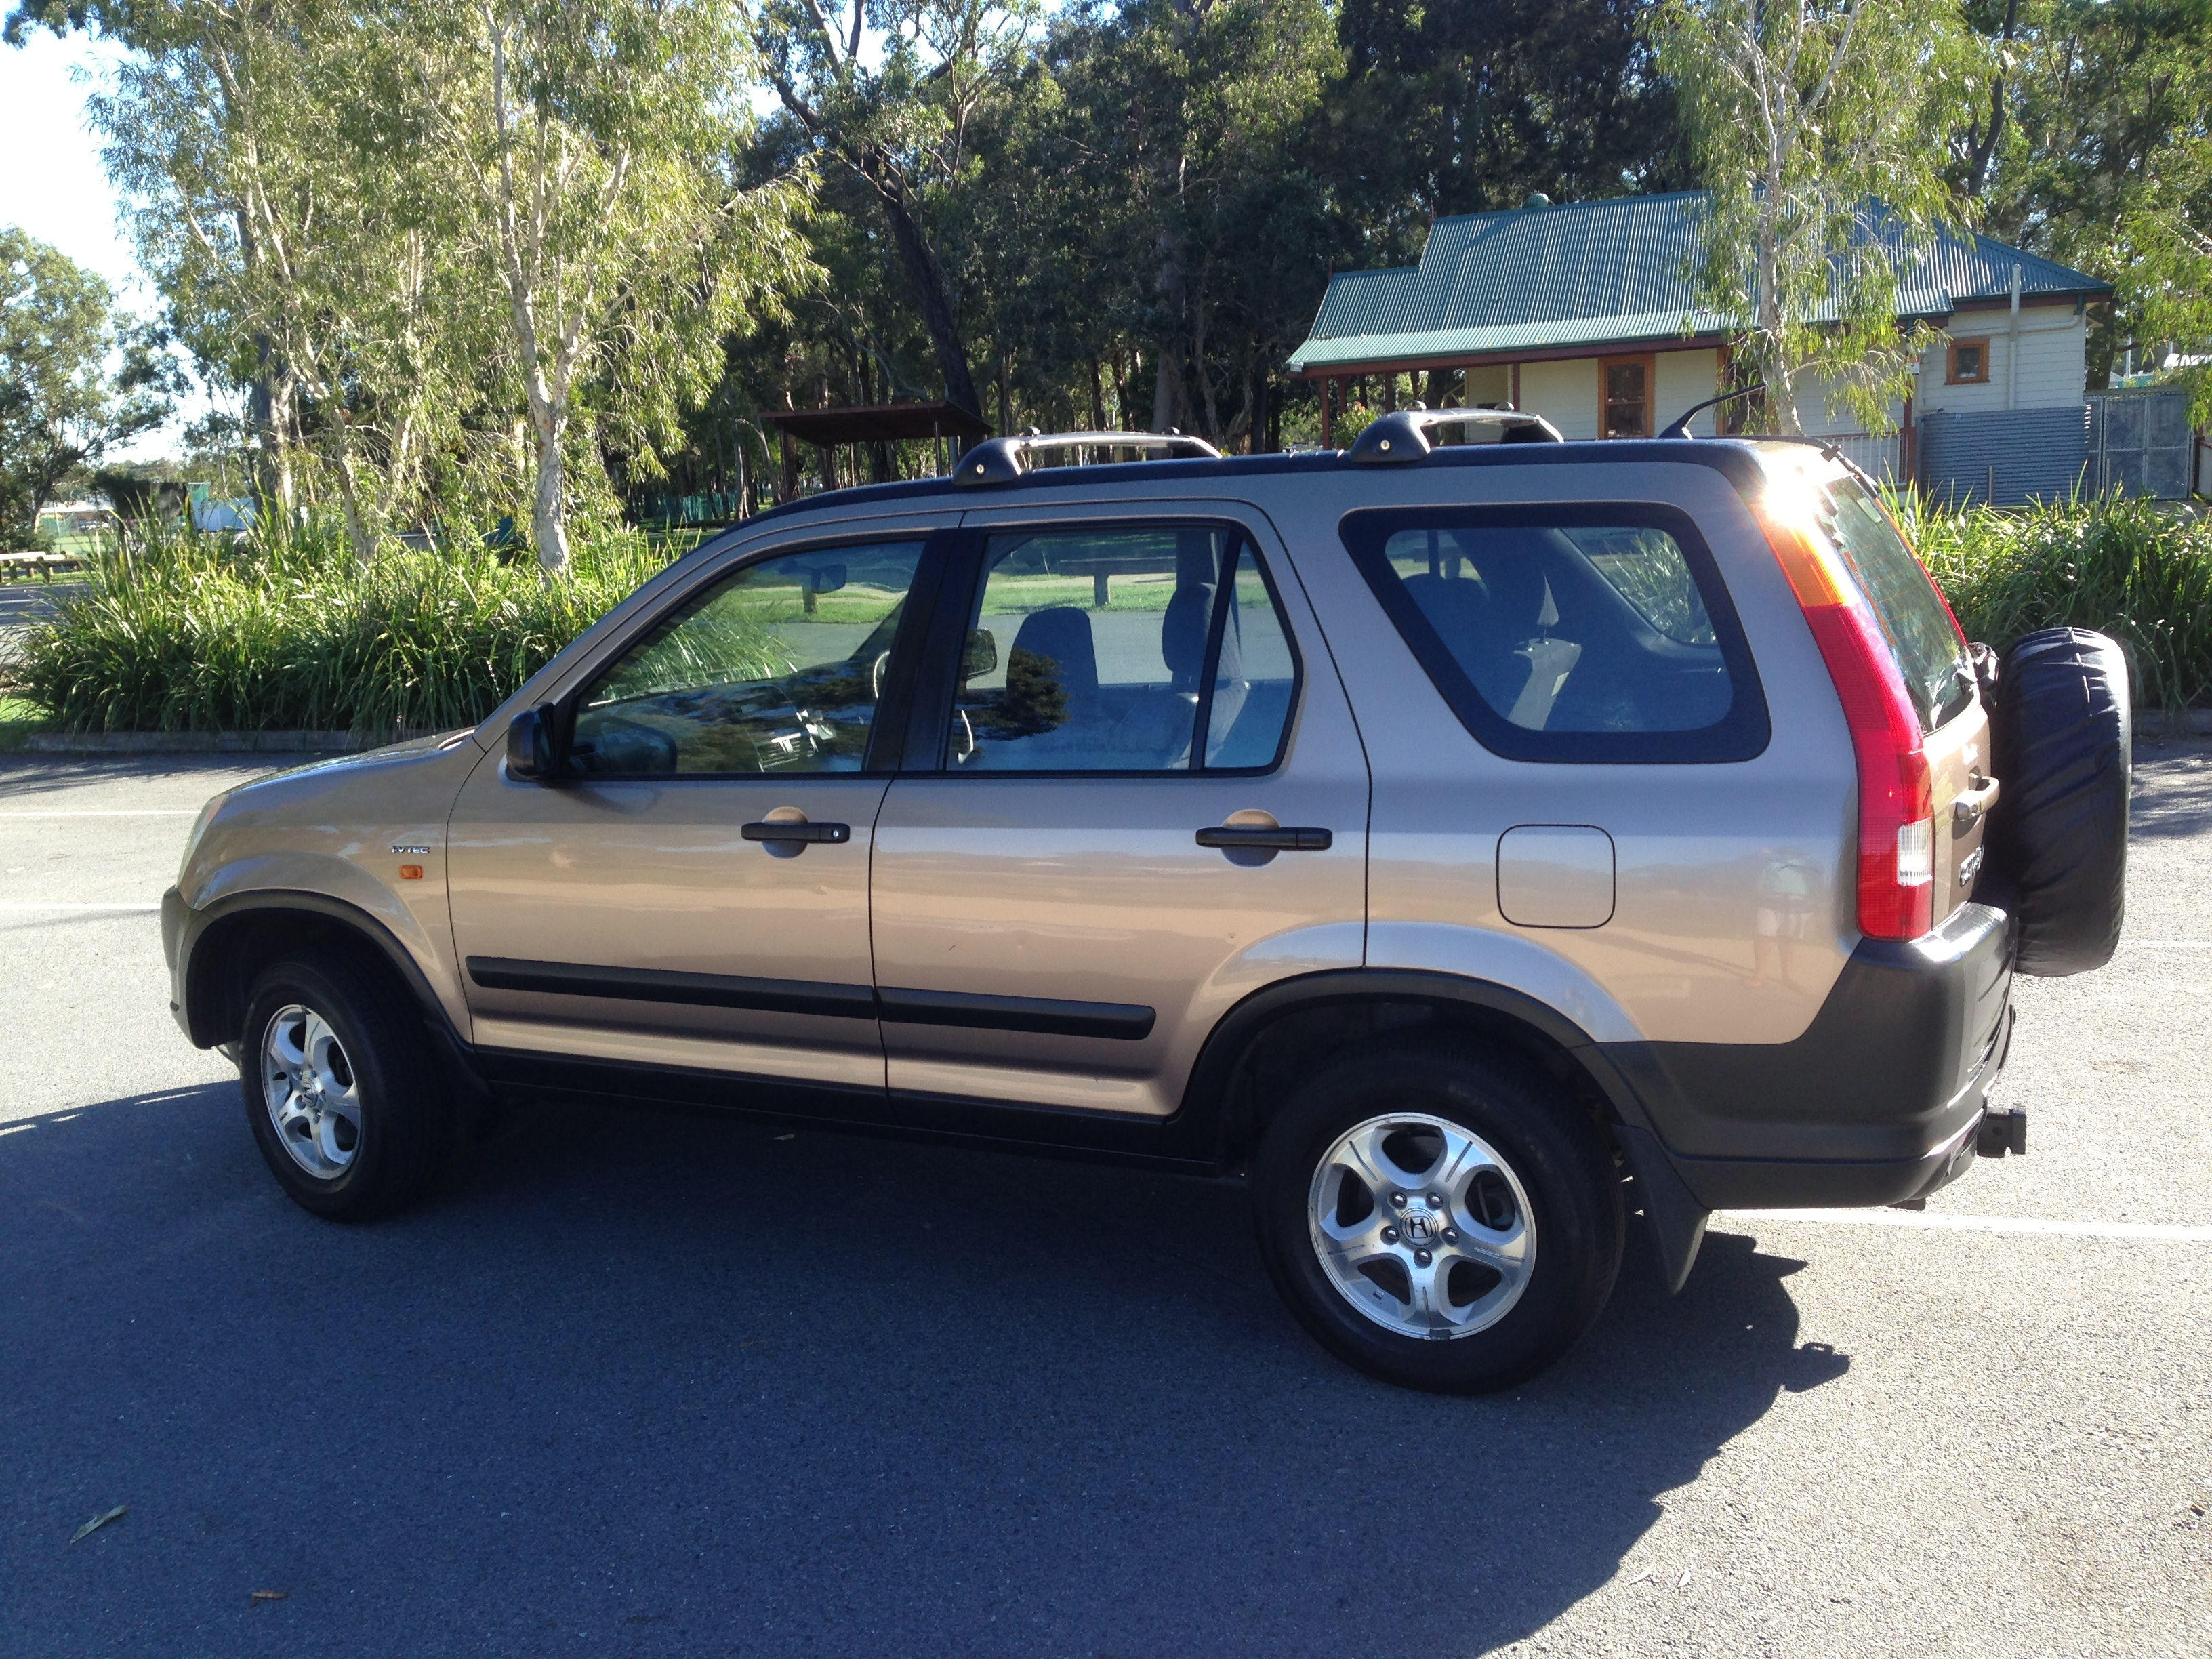 2003 honda crv 4x4 winter classic for sale or swap qld. Black Bedroom Furniture Sets. Home Design Ideas